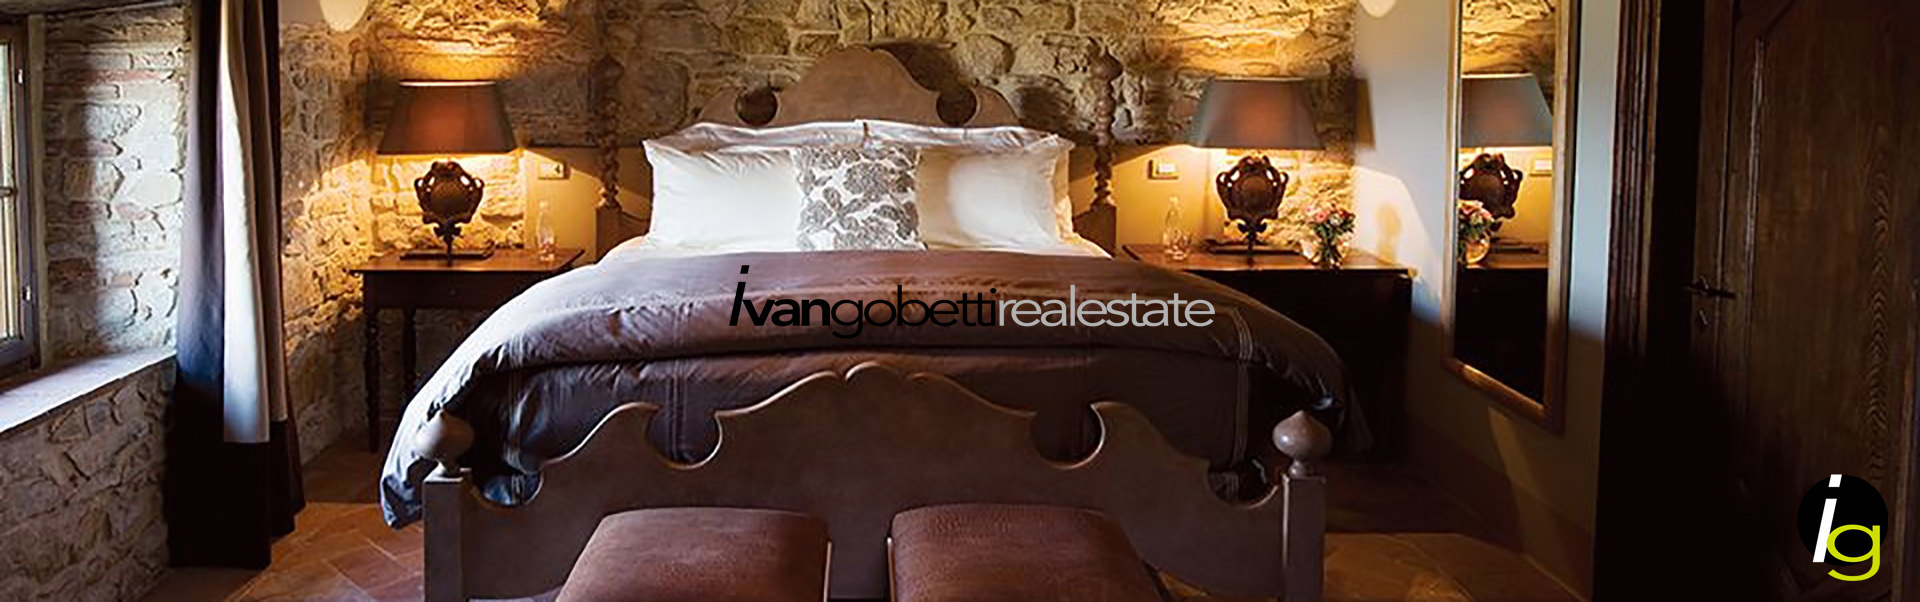 4 Star Hotel for sale in Val D'Aosta